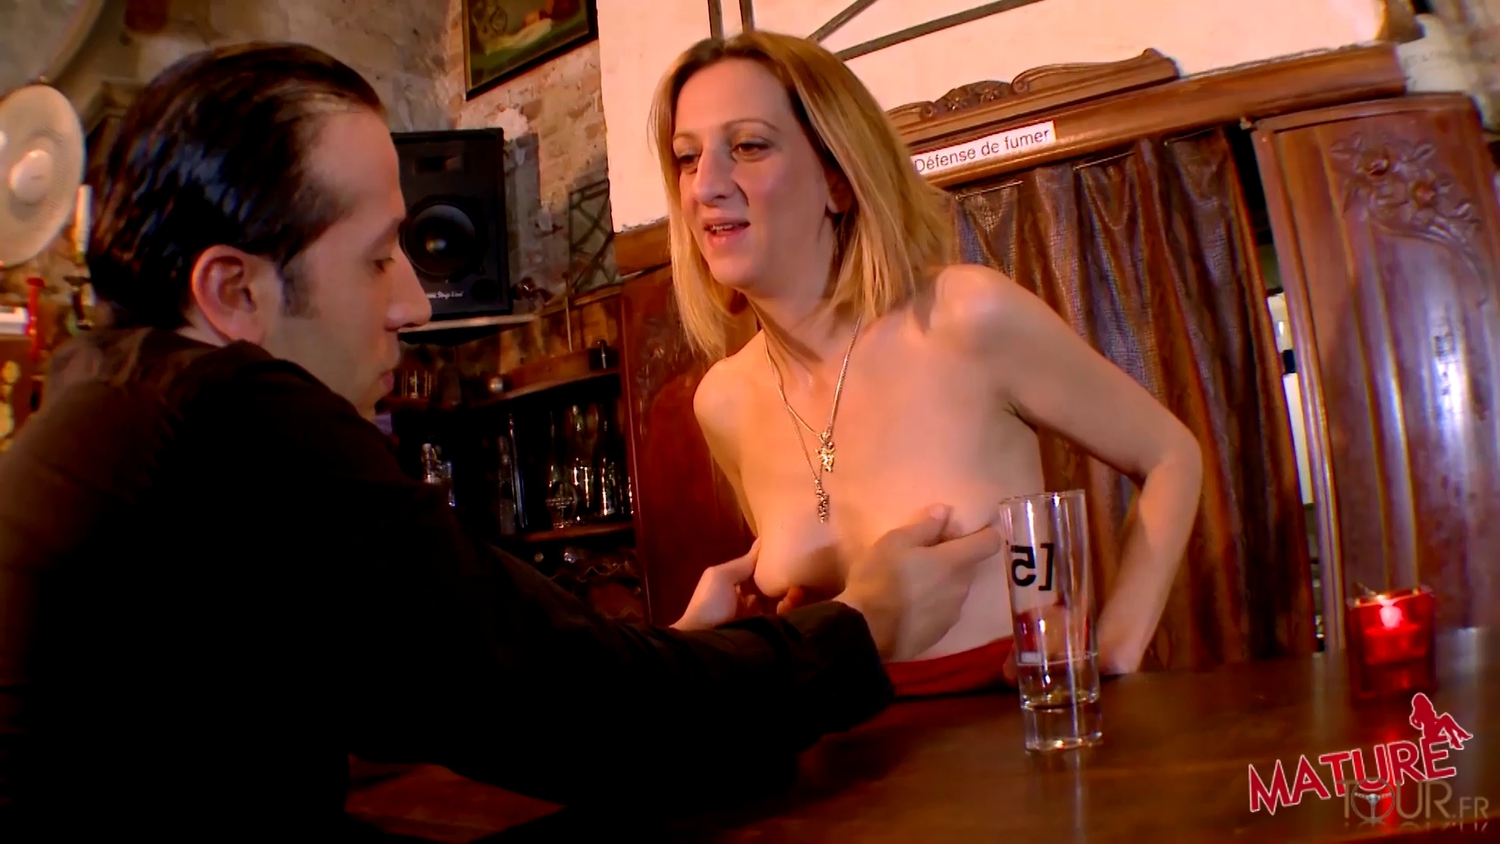 Busty mature bartender gets some action in HD After sweaty workout